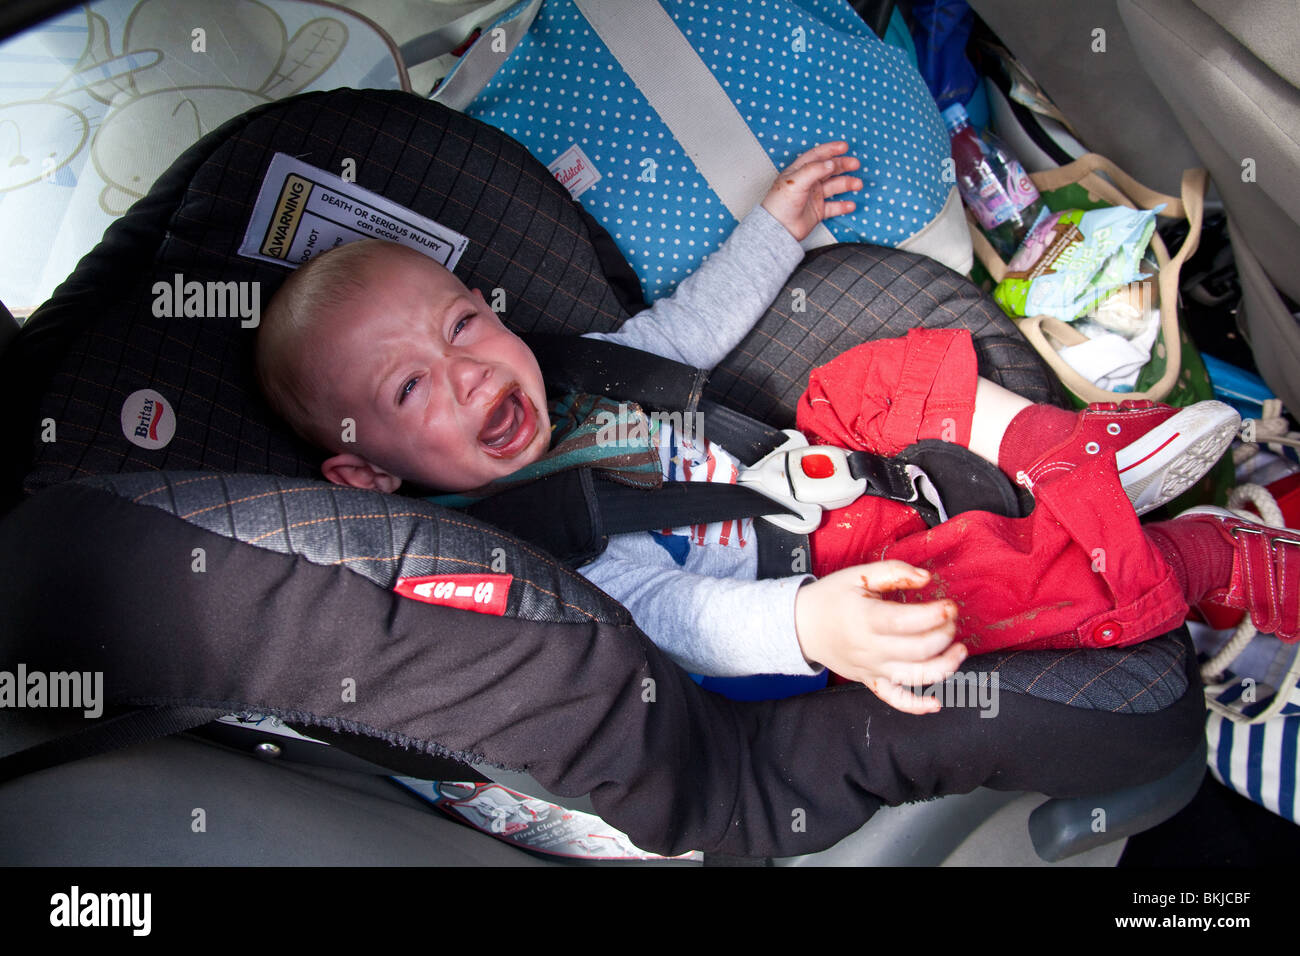 Baby boy (1 year old) in a car seat crying for more chocolate with